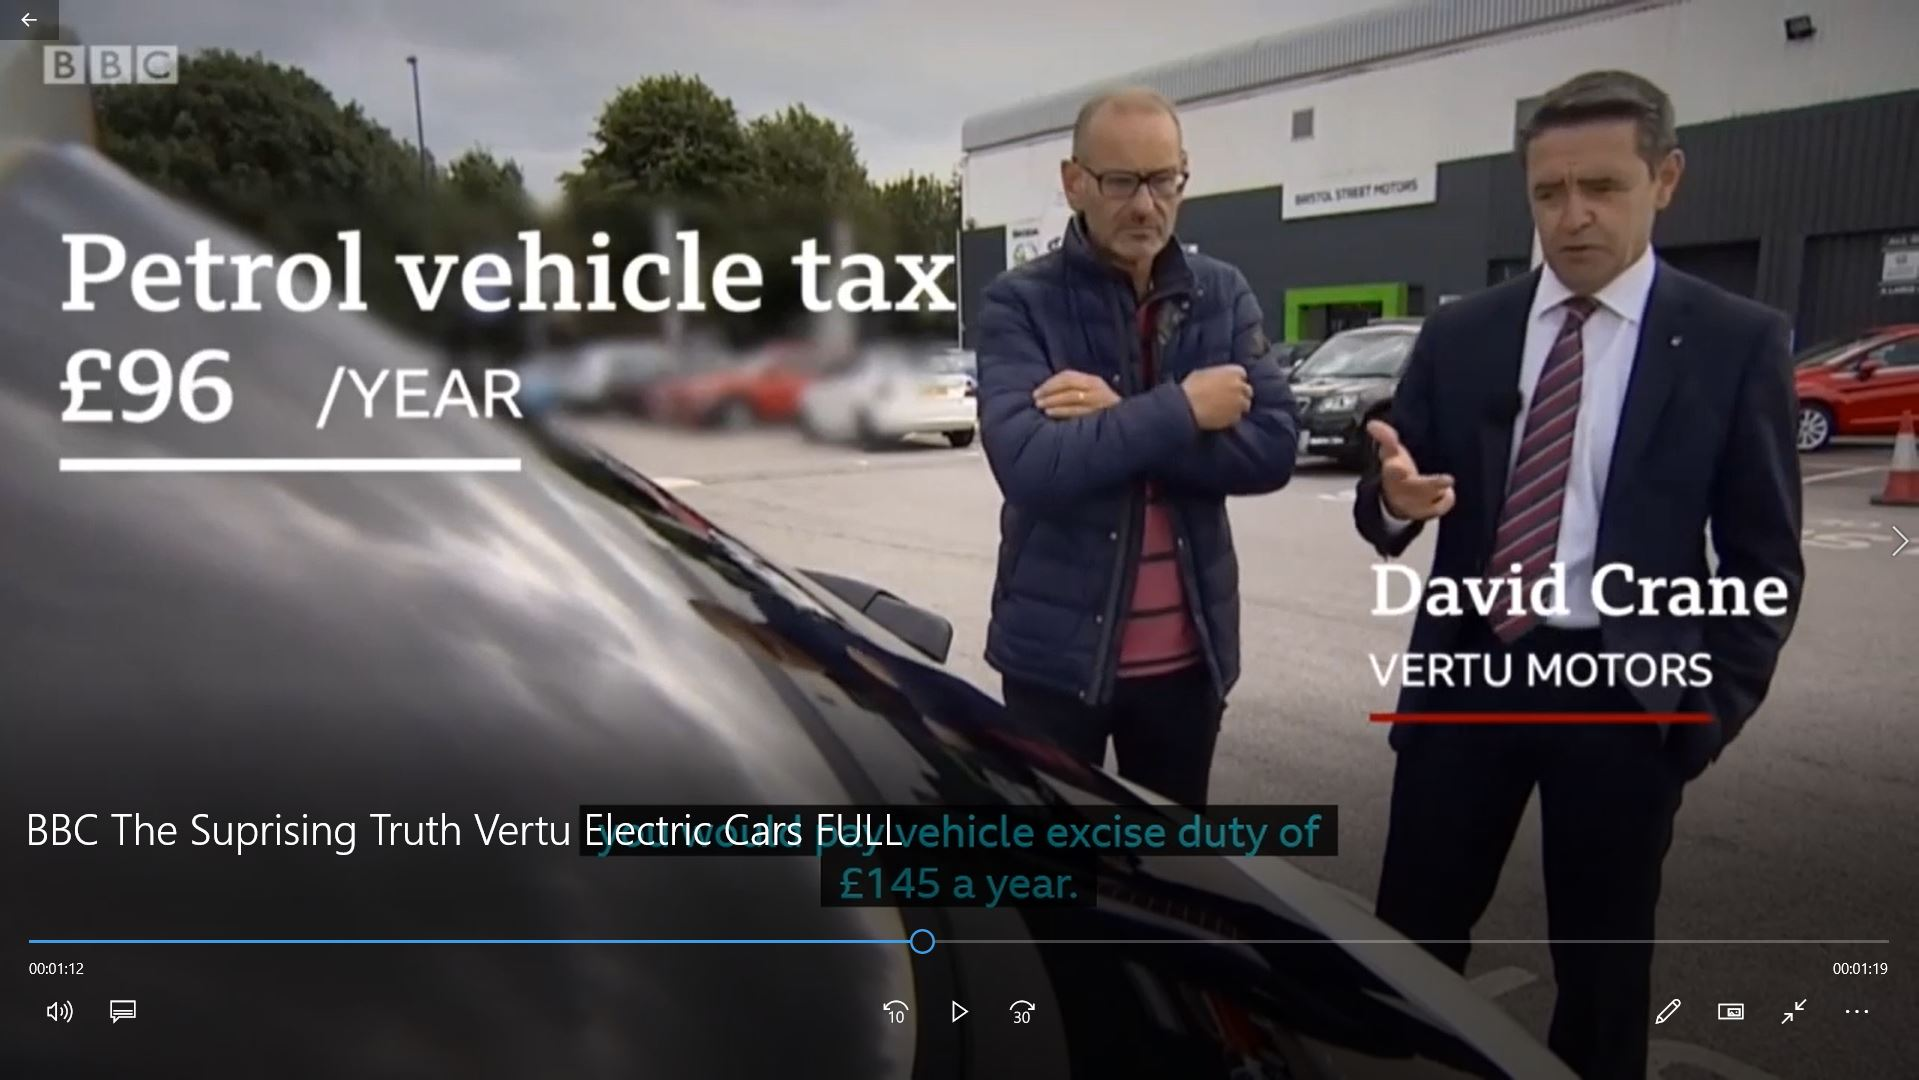 VIDEO: Vertu Motors Featured on BBC's The Surprising Truth